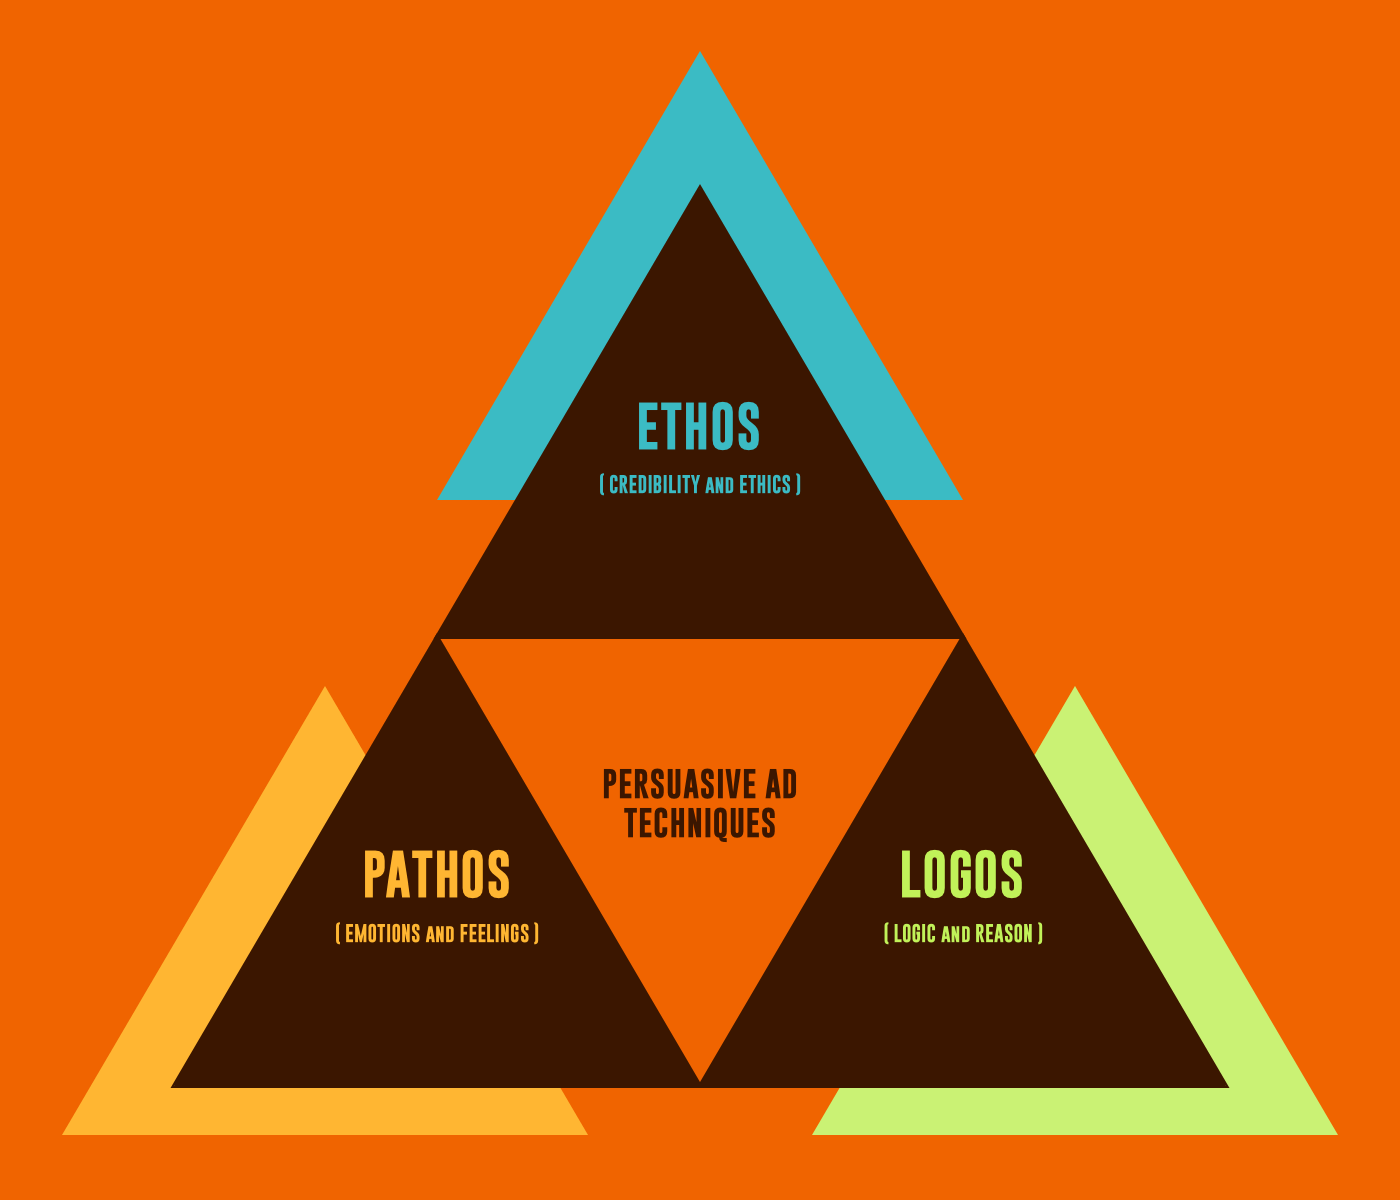 Inspiring Ads and Commercials - Ethos Pathos Logos Triangle